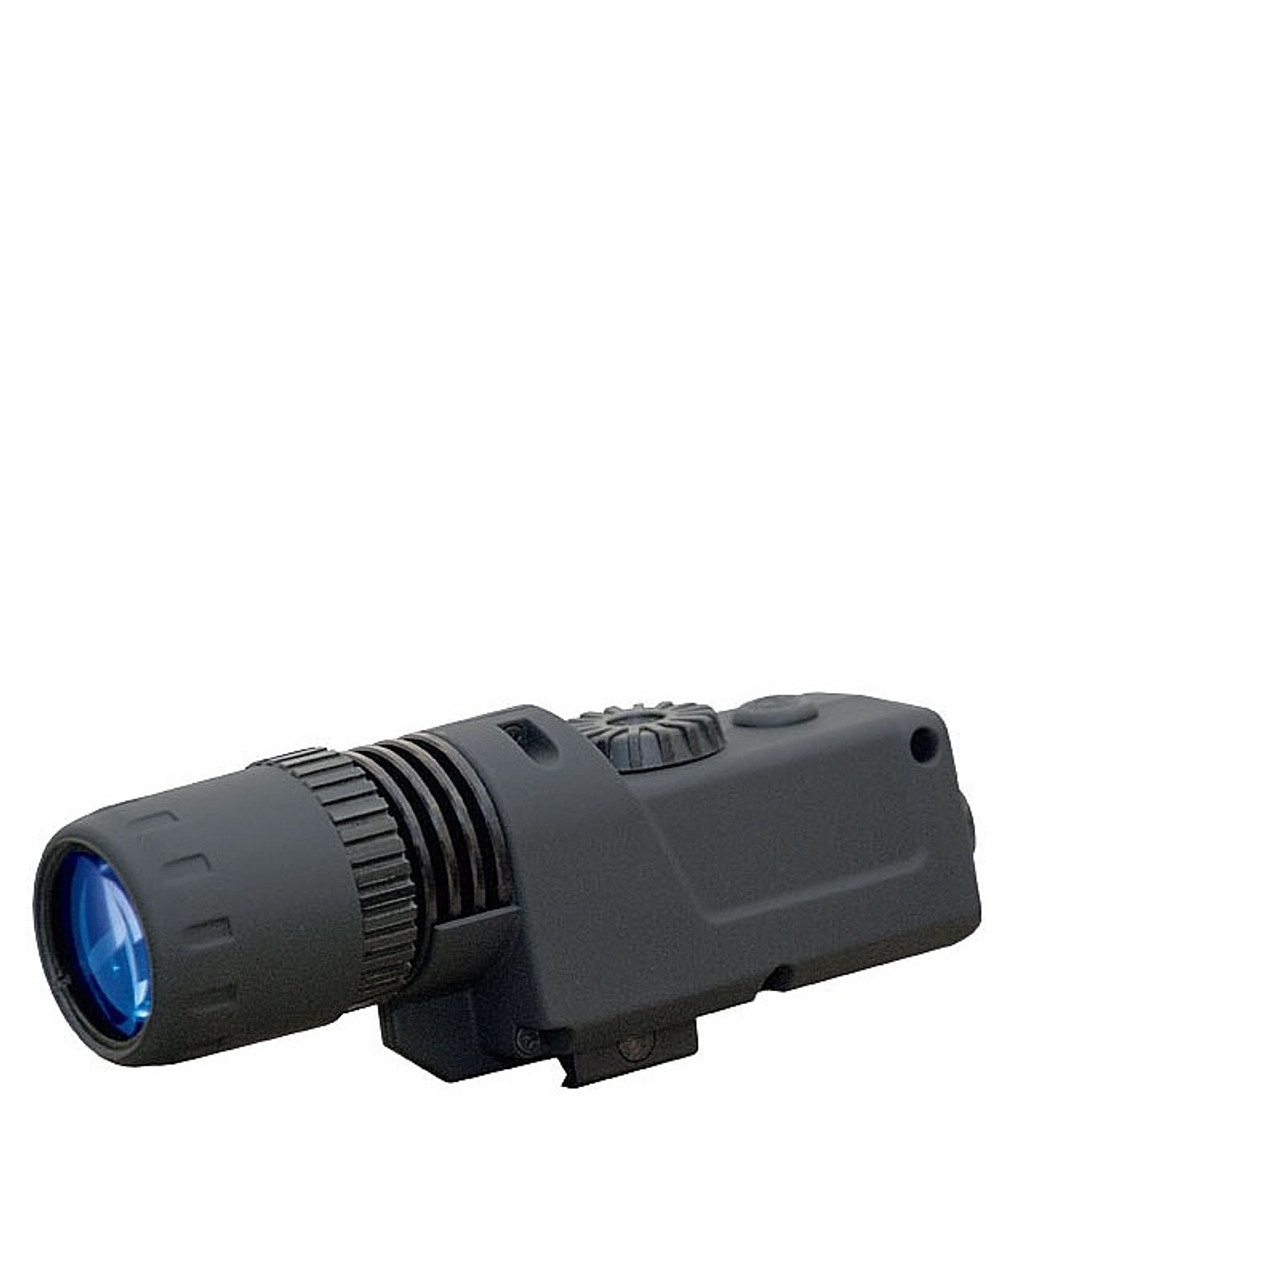 Pulsar 805 IR Flashlight